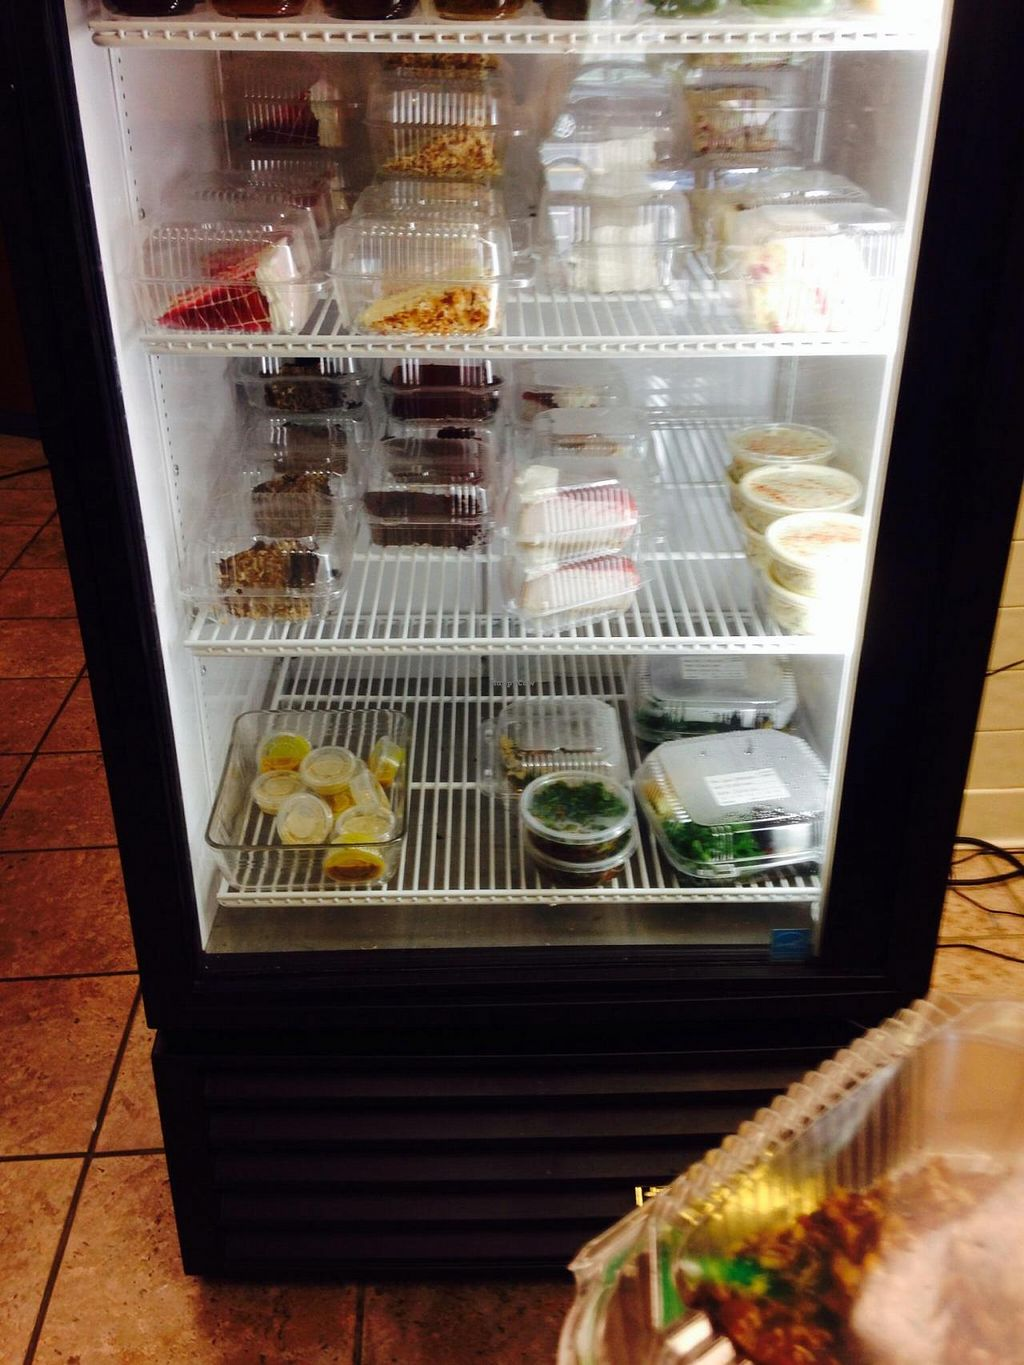 """Photo of Senbeb Cafe  by <a href=""""/members/profile/cookiem"""">cookiem</a> <br/>So many vegan desserts!! <br/> August 23, 2014  - <a href='/contact/abuse/image/13840/77960'>Report</a>"""